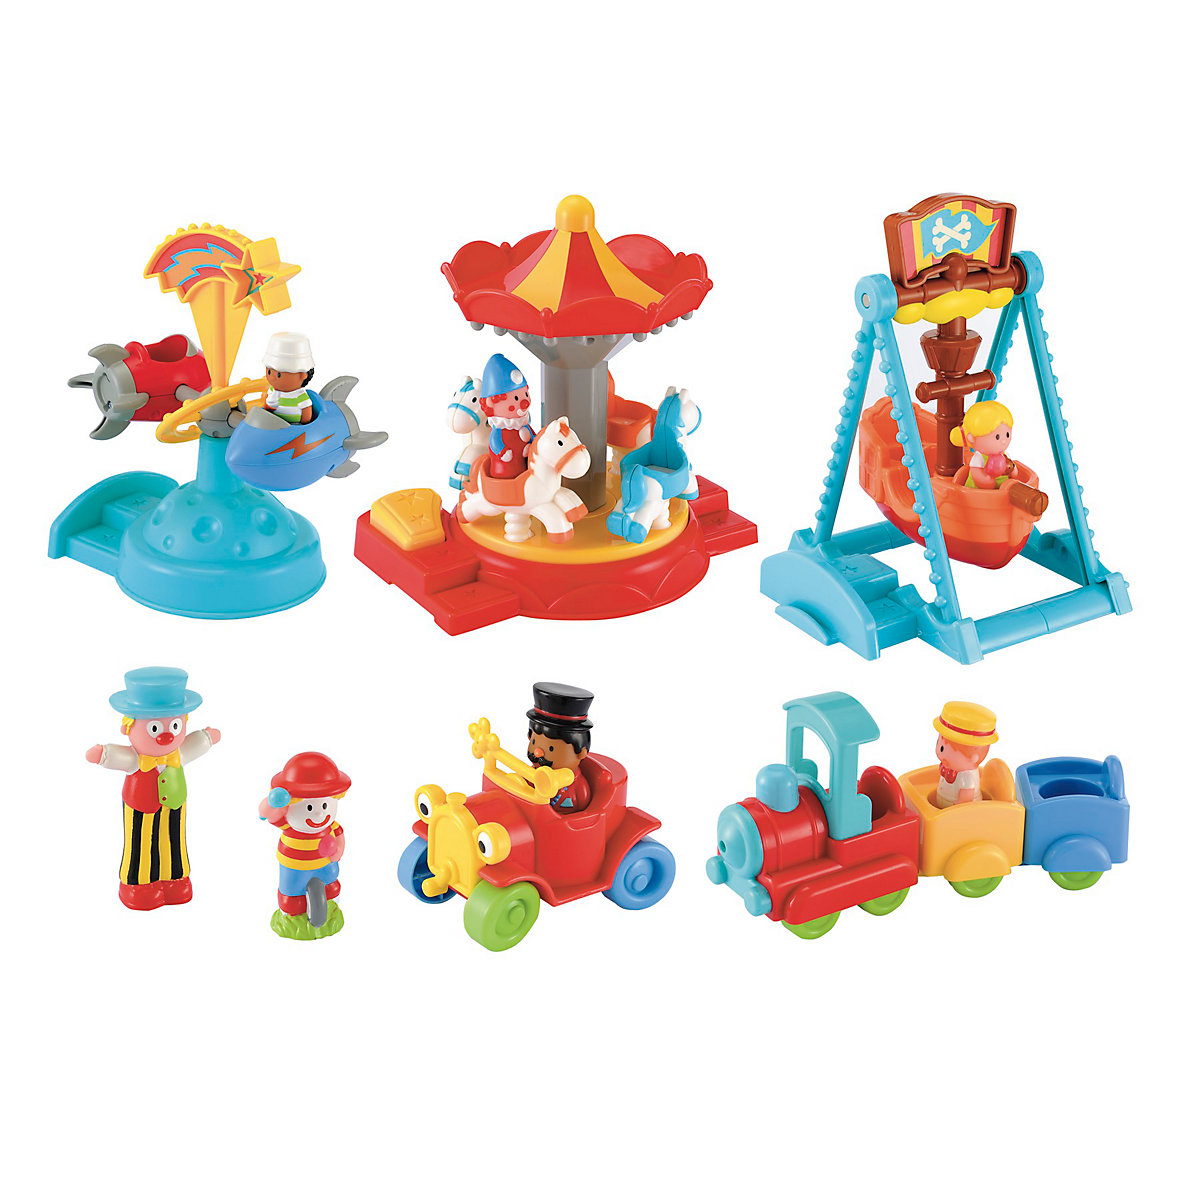 New HappyLand Boys and Girls Funfair Playset Toy From 12 months - Toy Gifts